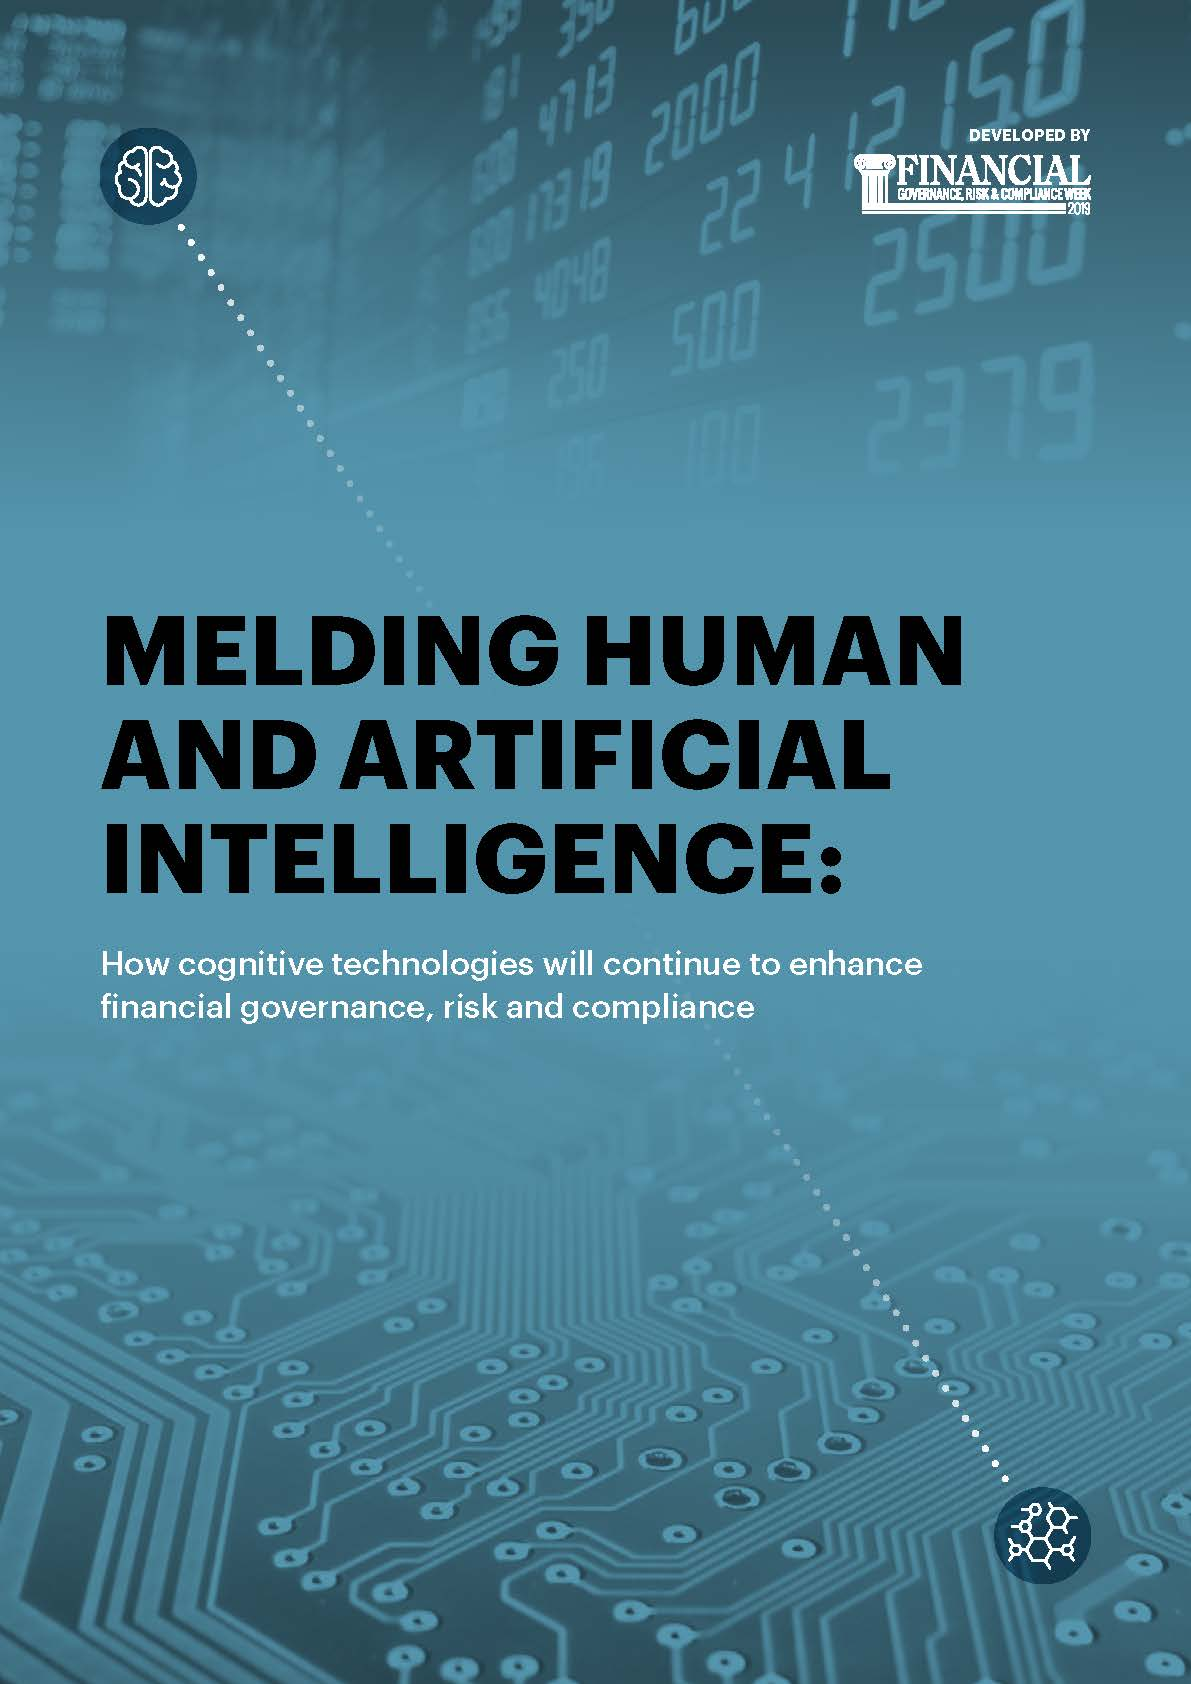 Download the Report - Melding Human and Artificial Intelligence: How Cognitive Technologies will Continue to Enhance Financial Governance, Risk and Compliance